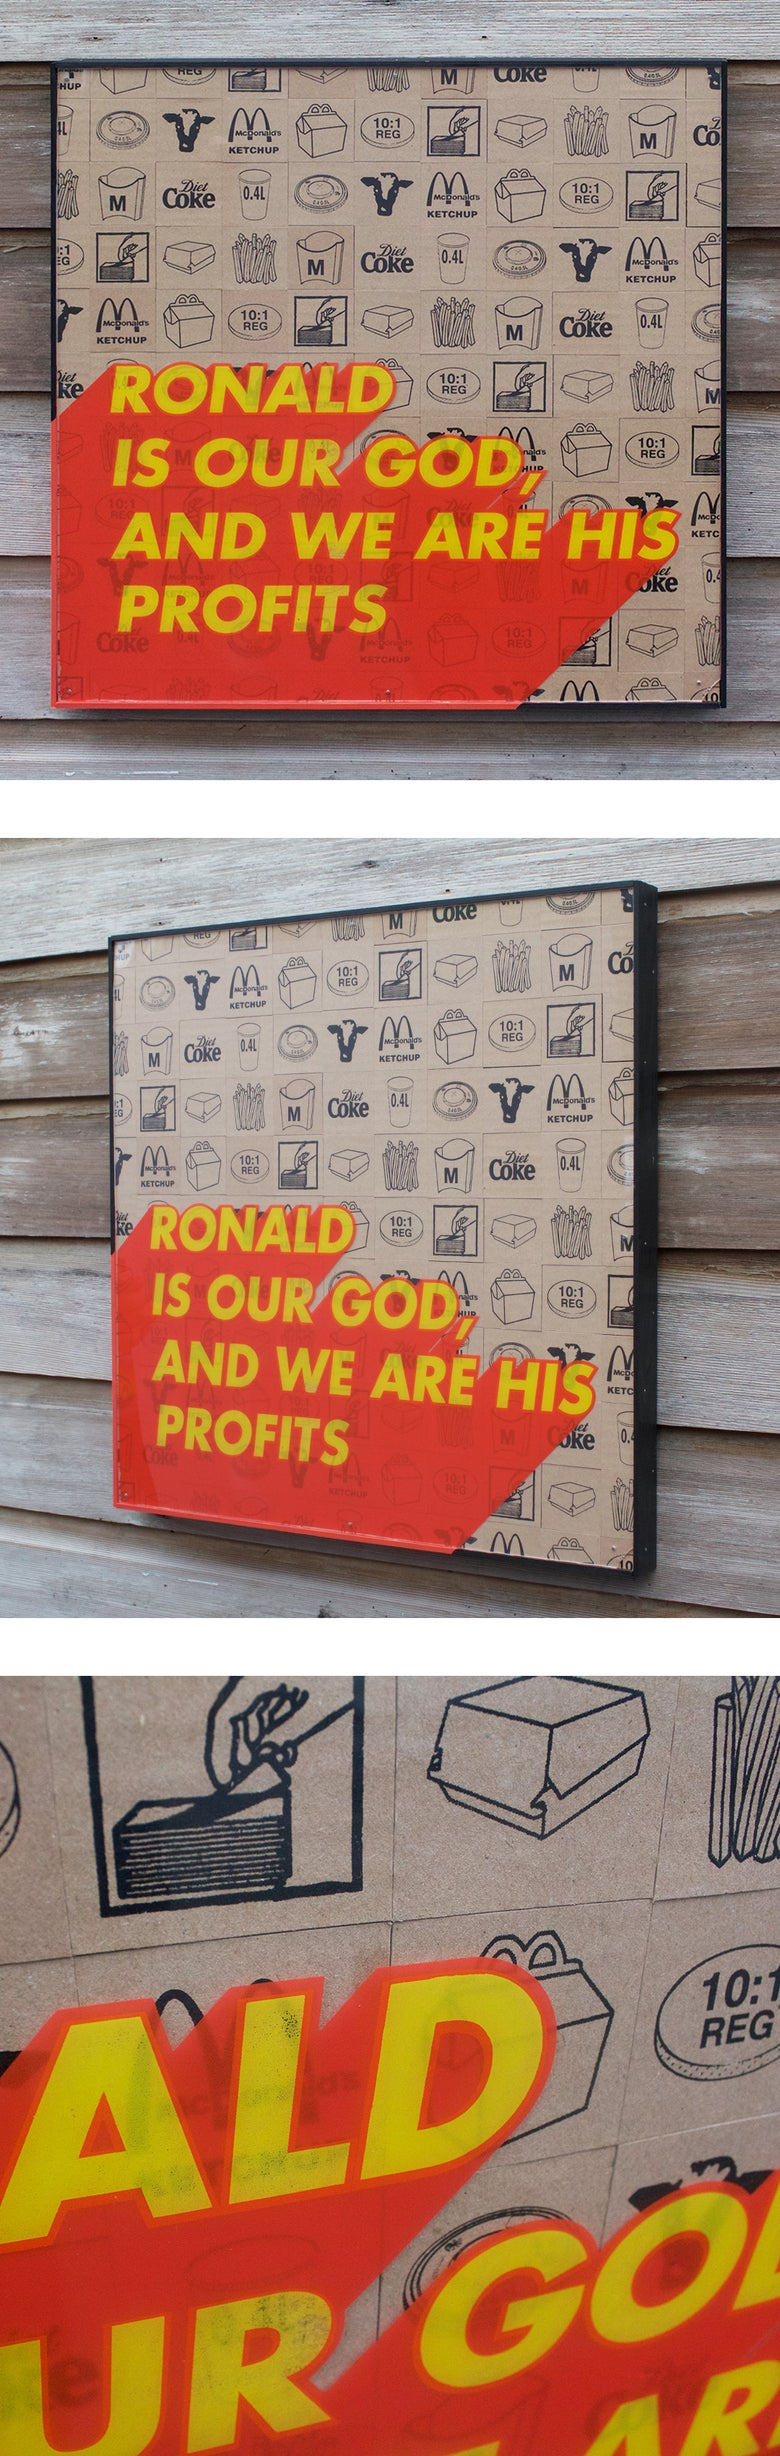 Image of Ronald is our god, and we are his profits